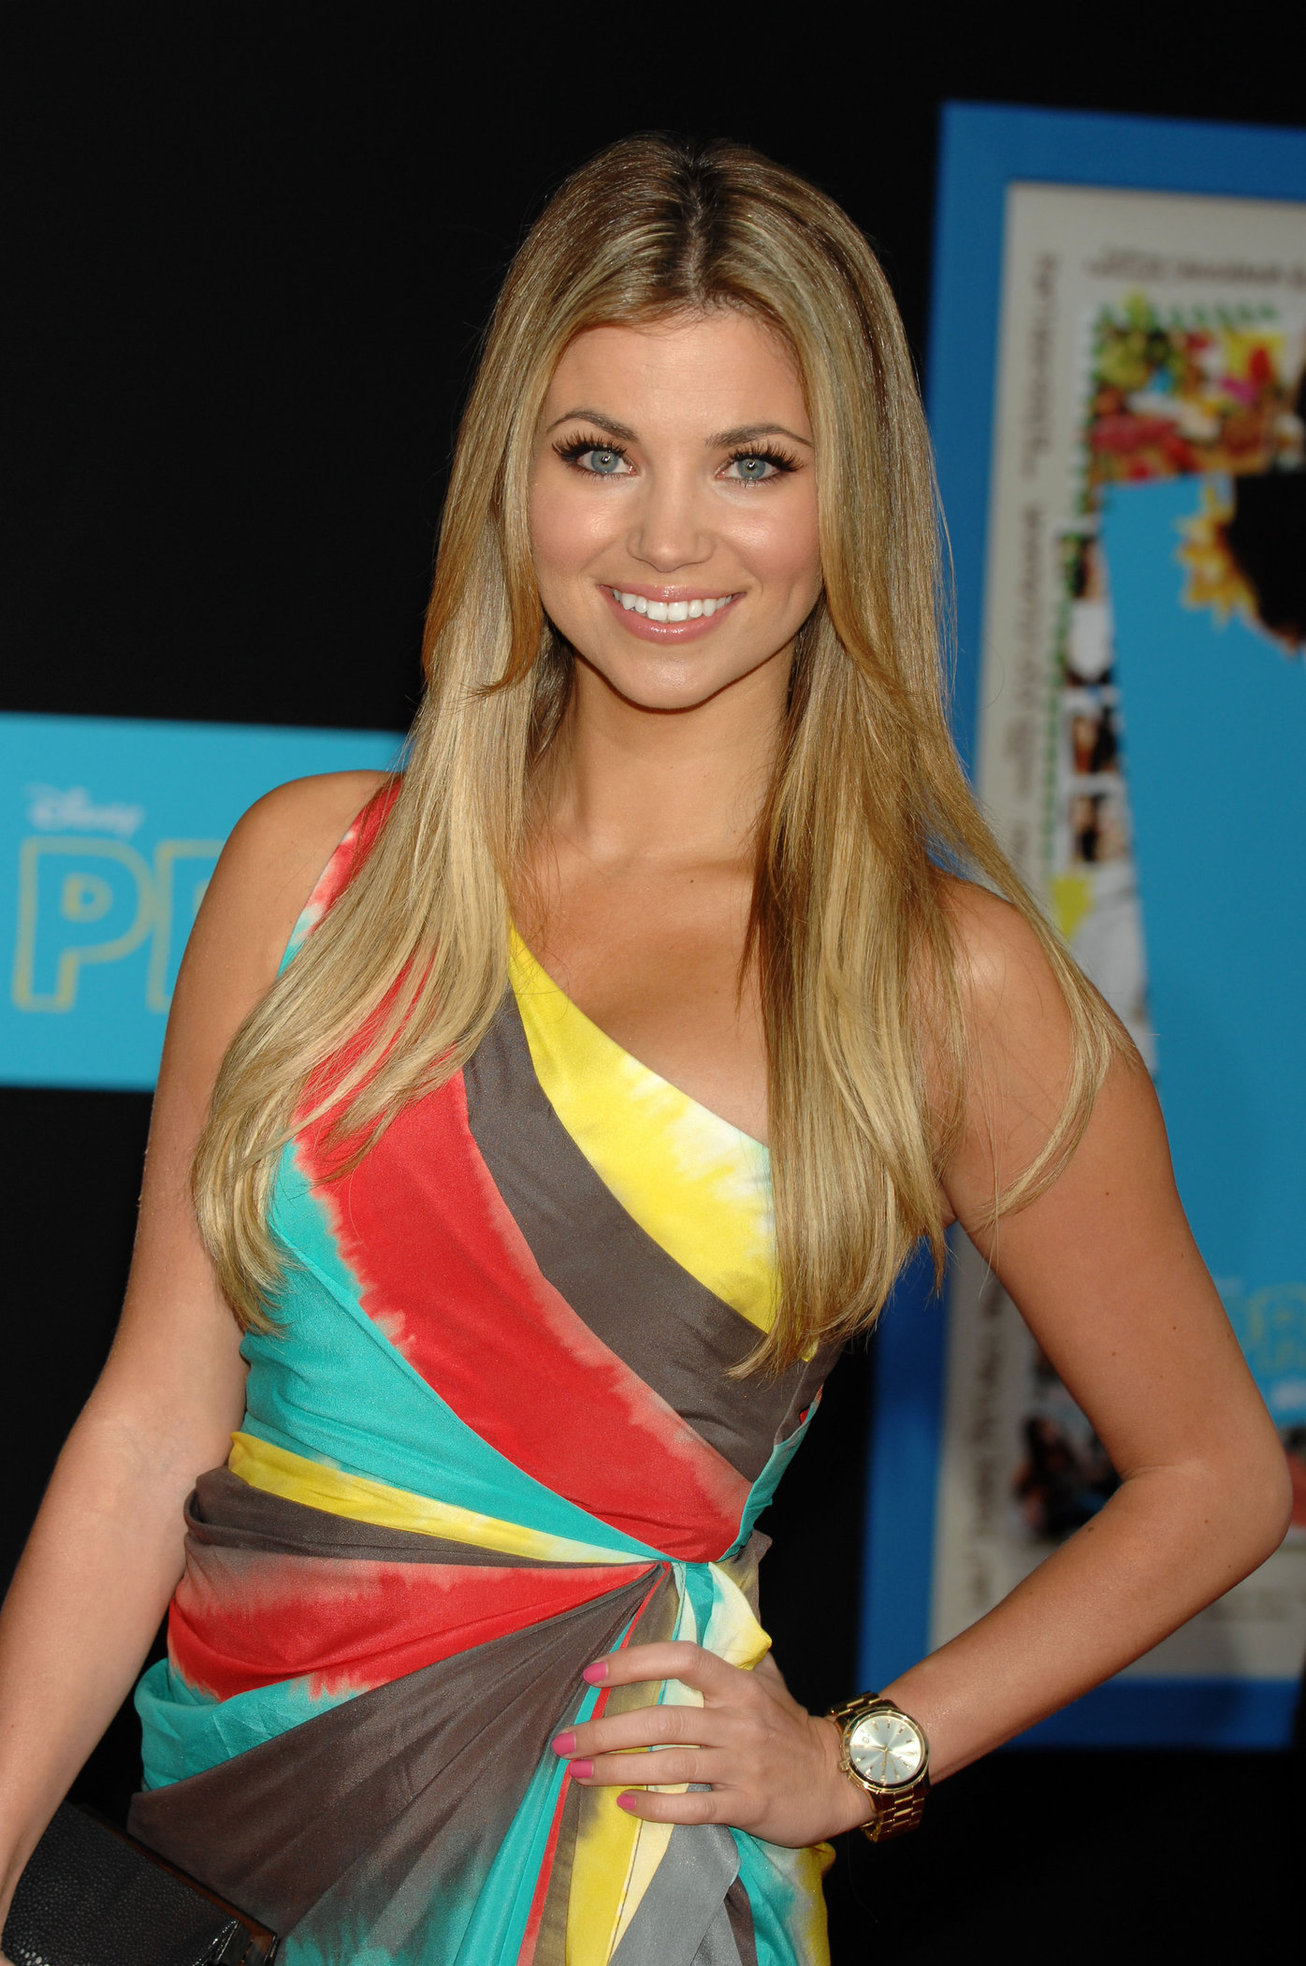 Amber Lancaster Los Angeles premiere of Disney's Prom held at the El Capitan Theatre on April 21, 2011